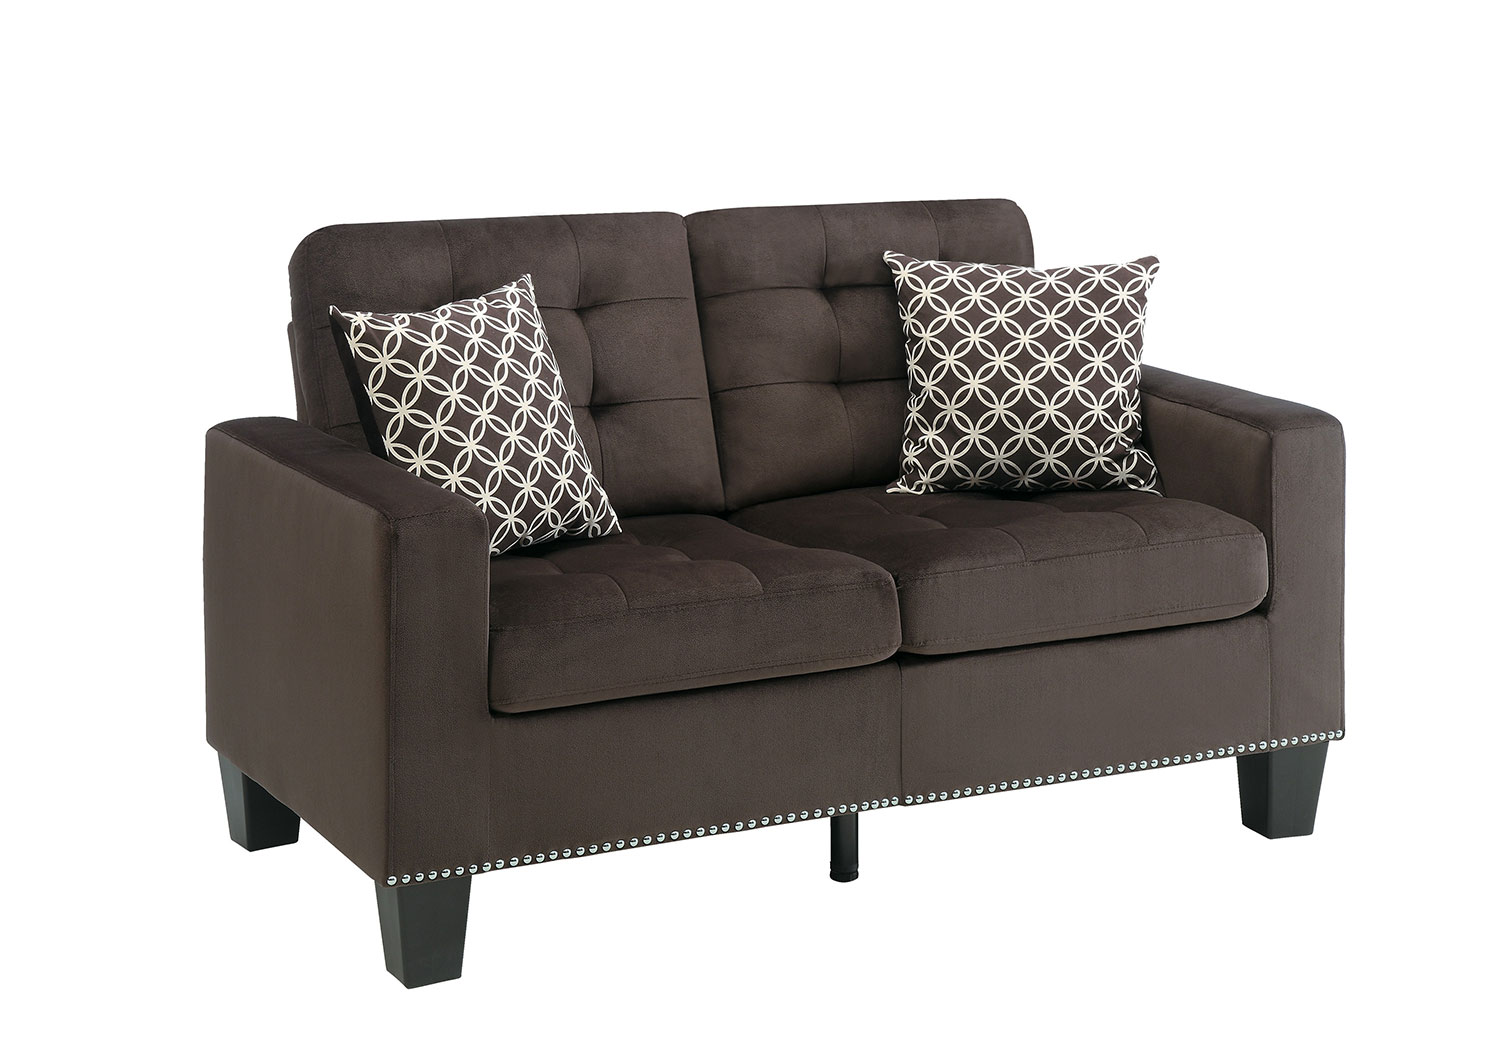 Homelegance Lantana Love Seat - Chocolate and Gray